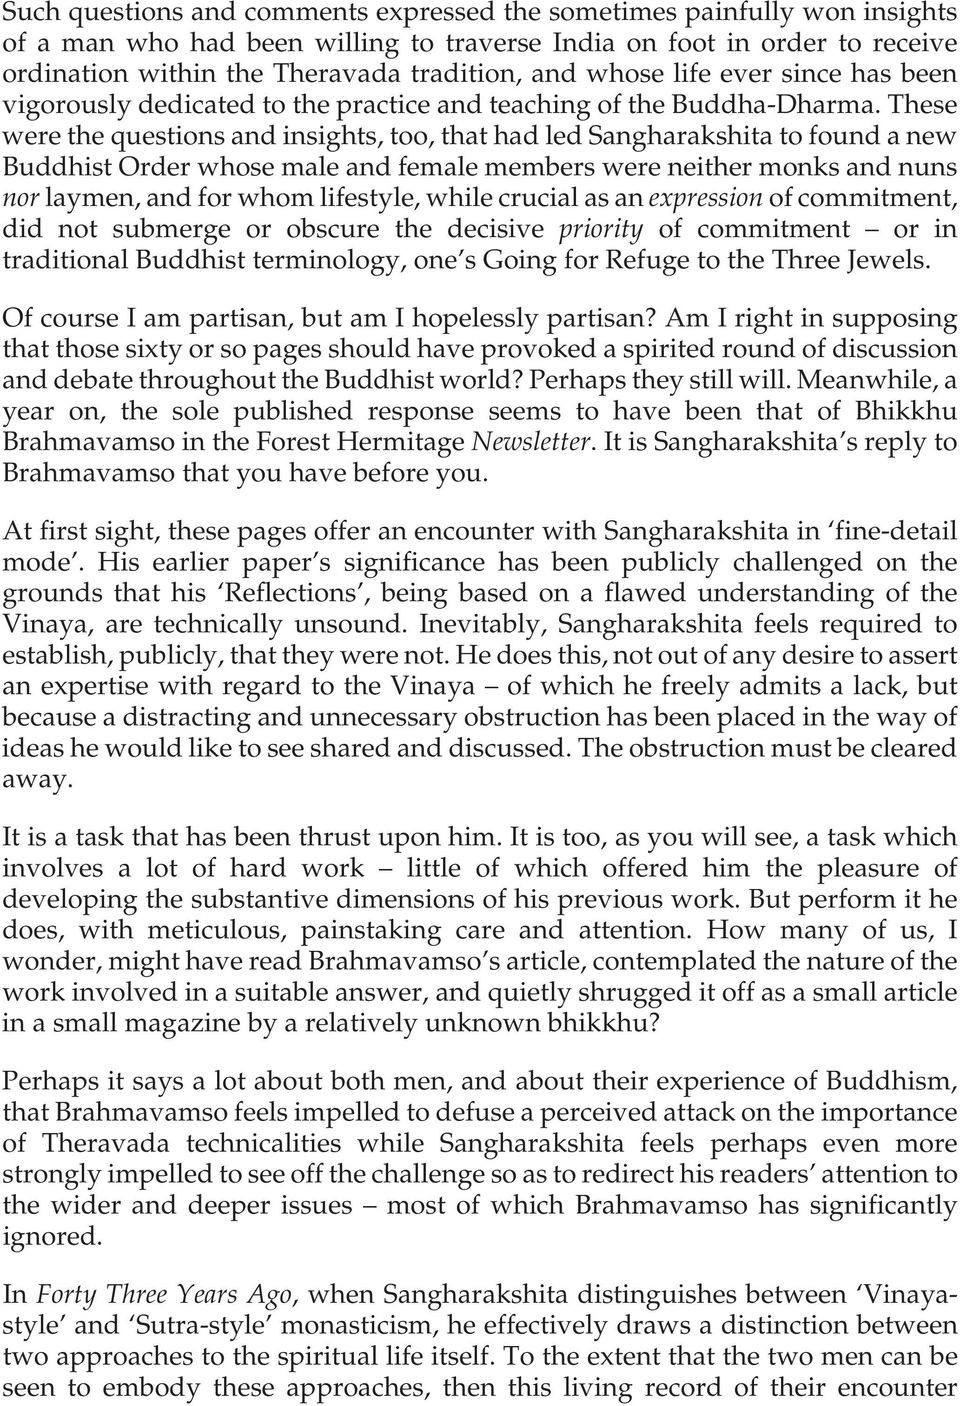 These were the questions and insights, too, that had led Sangharakshita to found a new Buddhist Order whose male and female members were neither monks and nuns nor laymen, and for whom lifestyle,